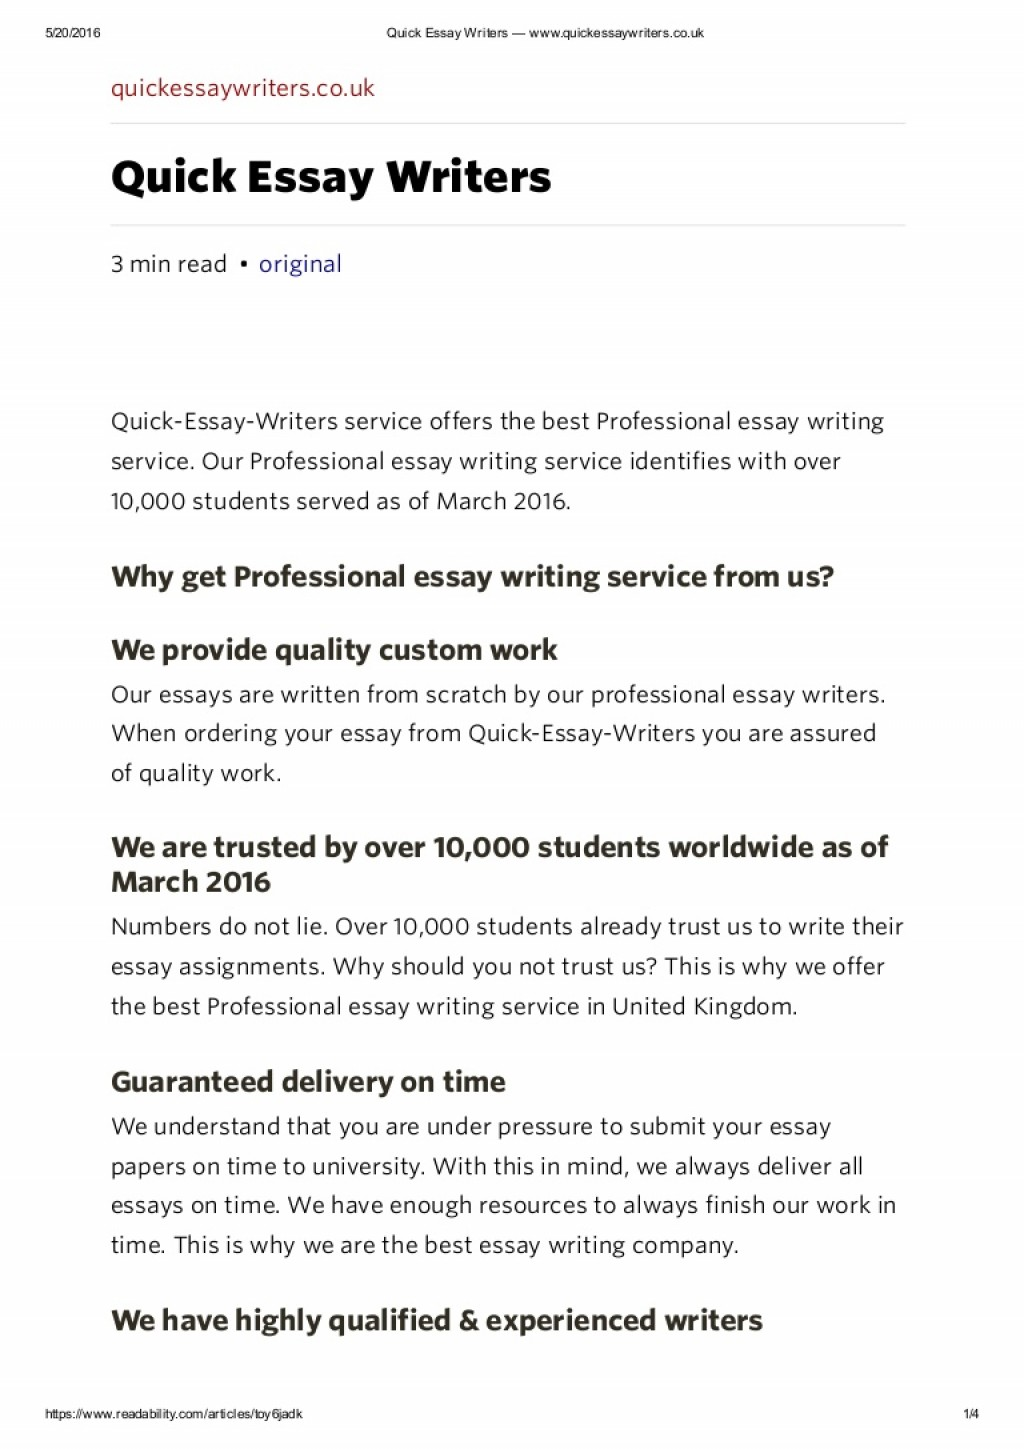 017 Essay Writing Company Professionalessaywritingservicequickessaywriterswww Thumbnail Frightening In Interview Best To Work For Uk Large